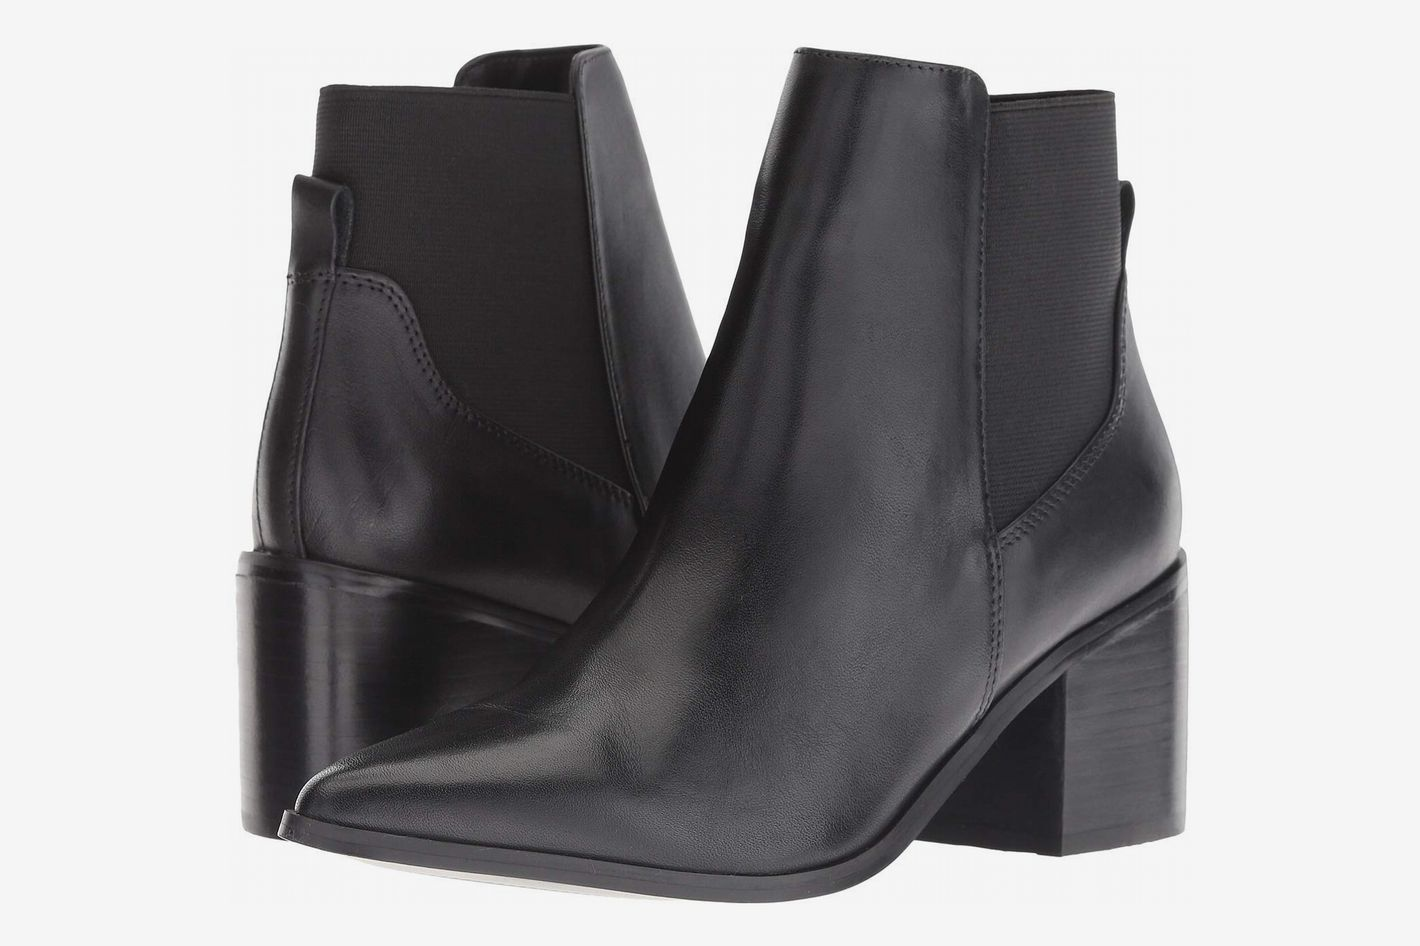 6915556f41 31 Best Chelsea Boots 2018